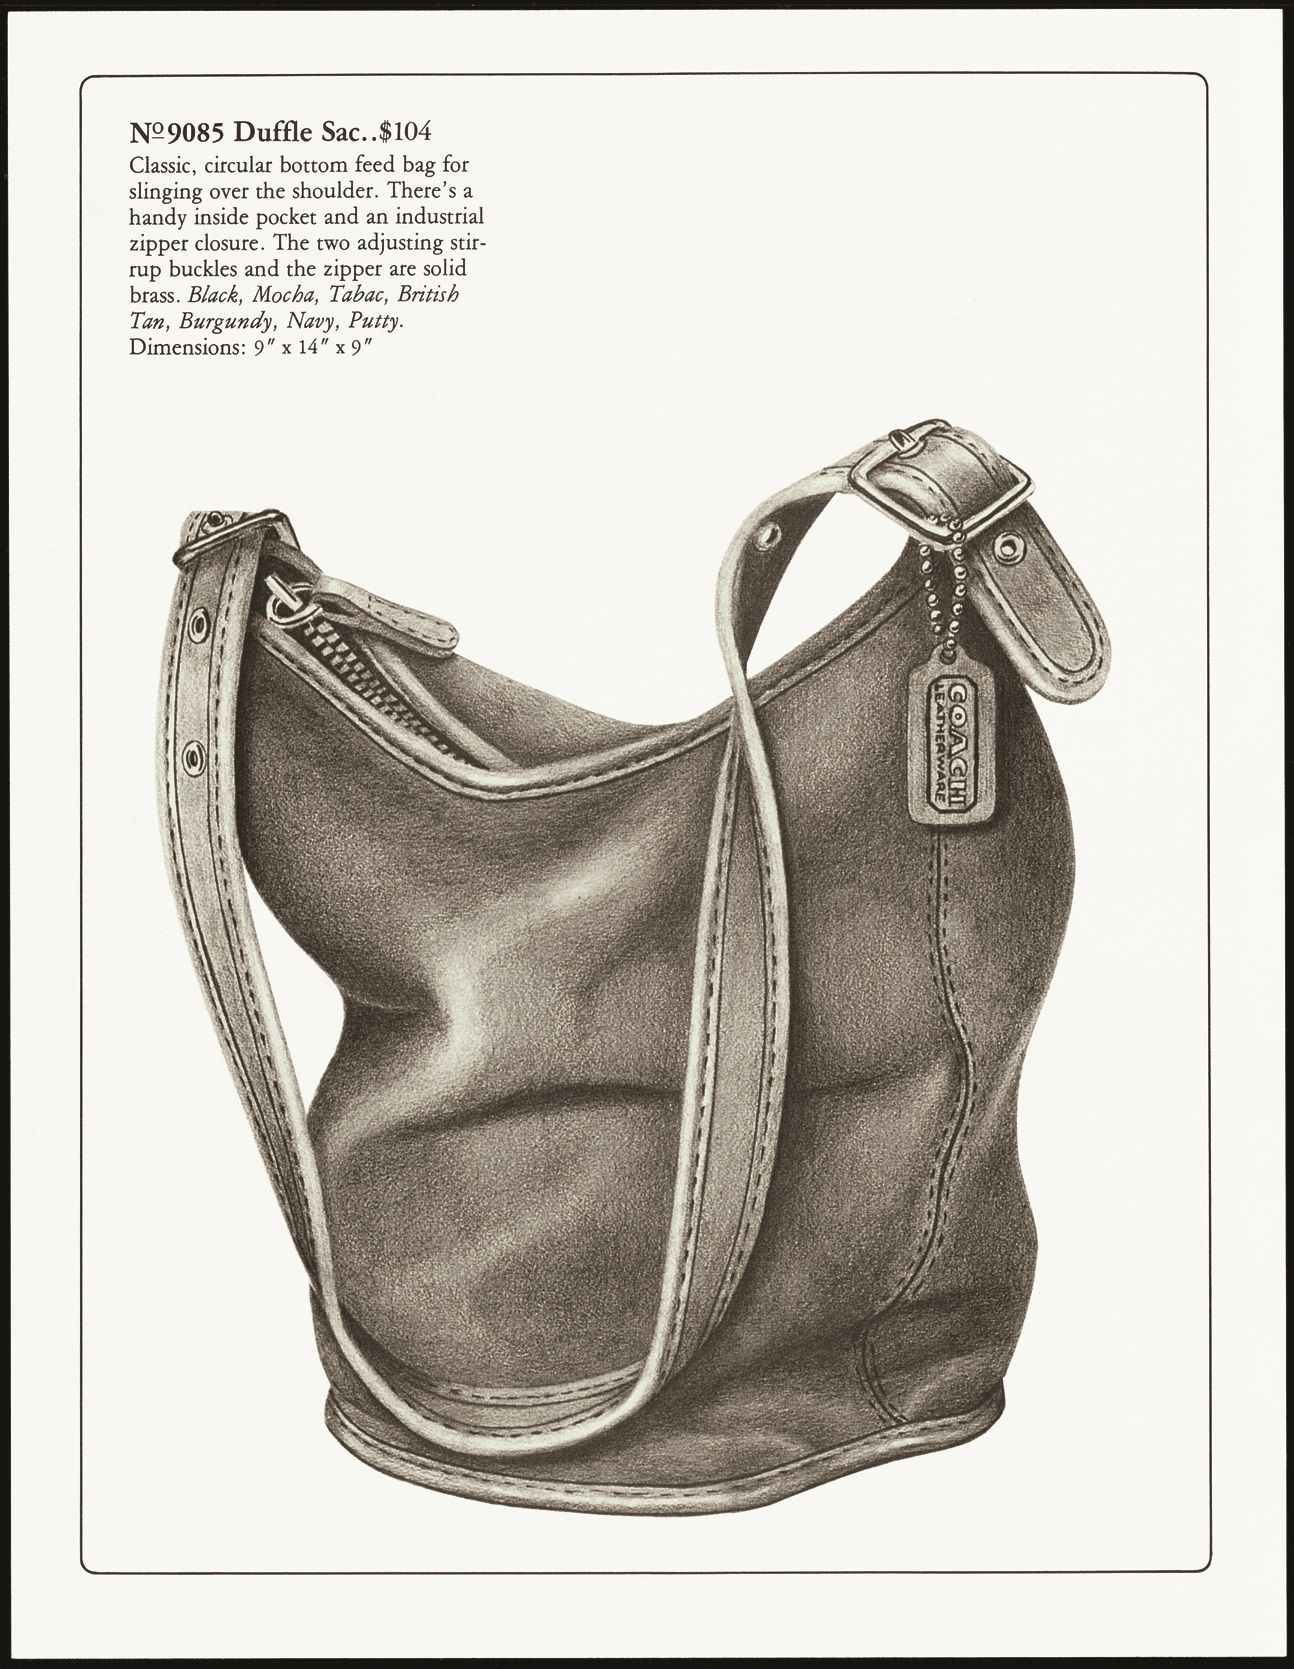 For Slinging Over The Shoulder Duffle Sac No 9085 In 1980 Coach Catalog